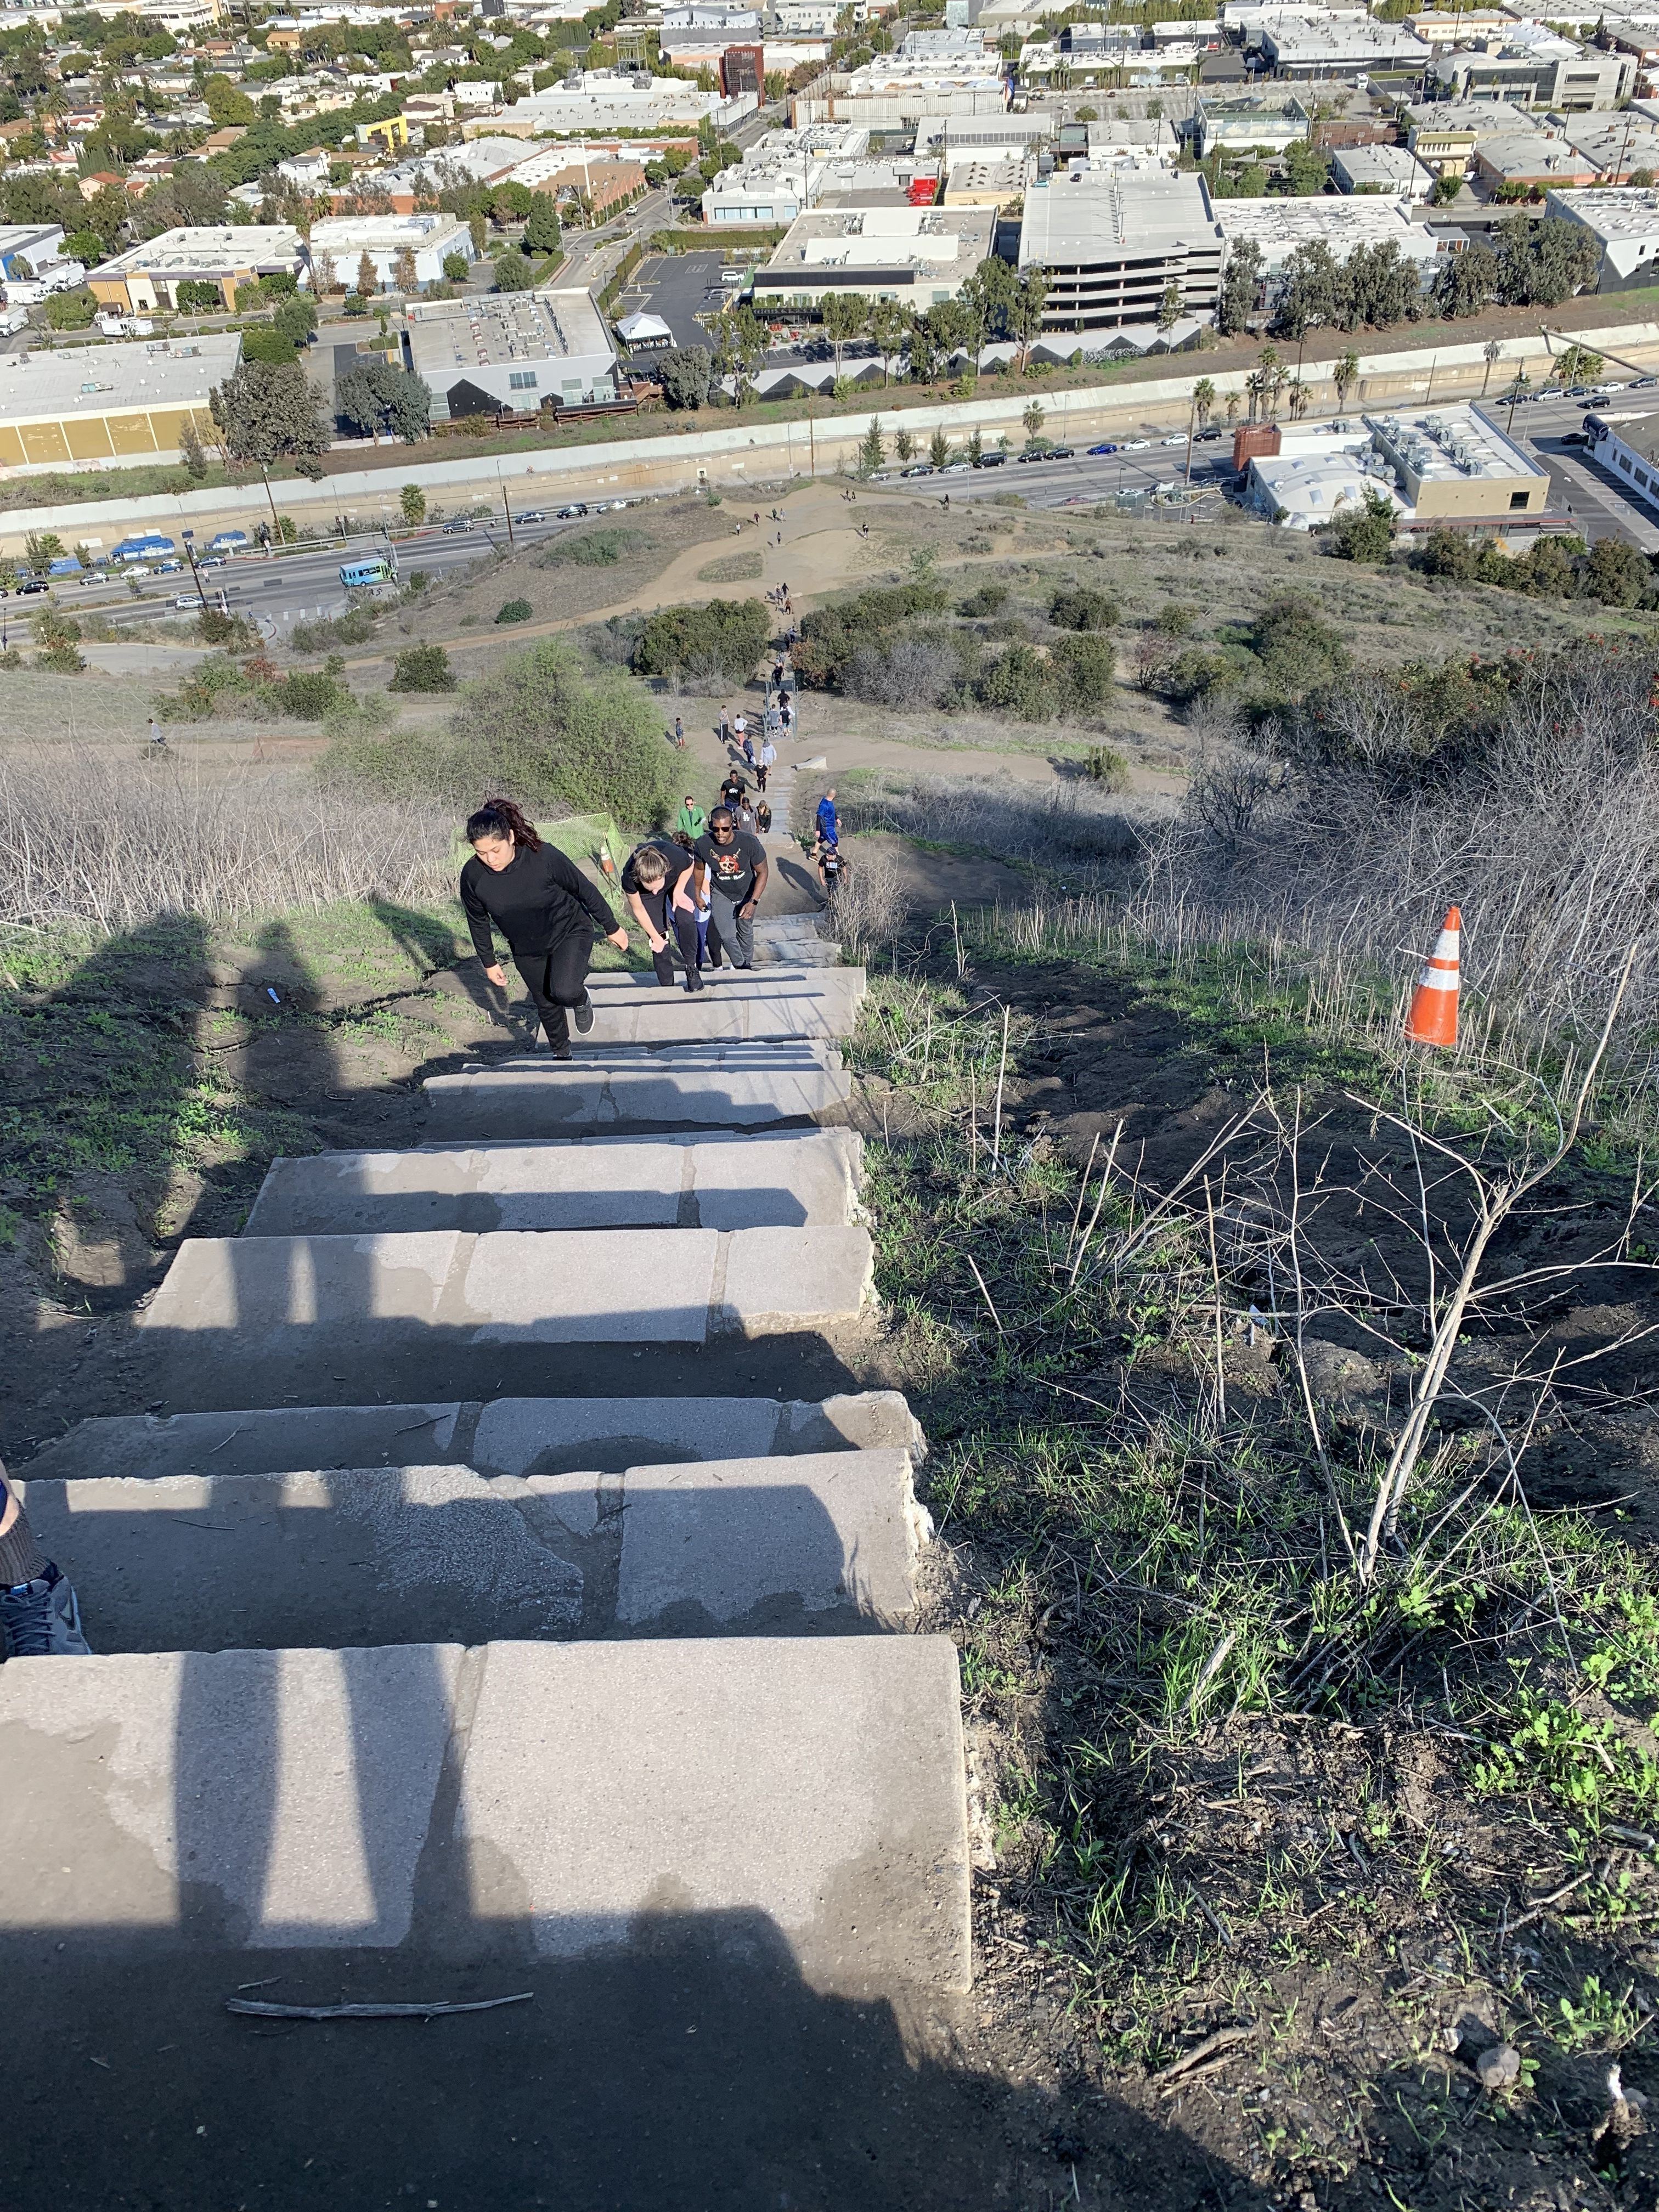 And Here We Go Again Culver City Stairs Baldwin Hills Los Angeles California Culver City Stairs Places To Travel Los Angeles